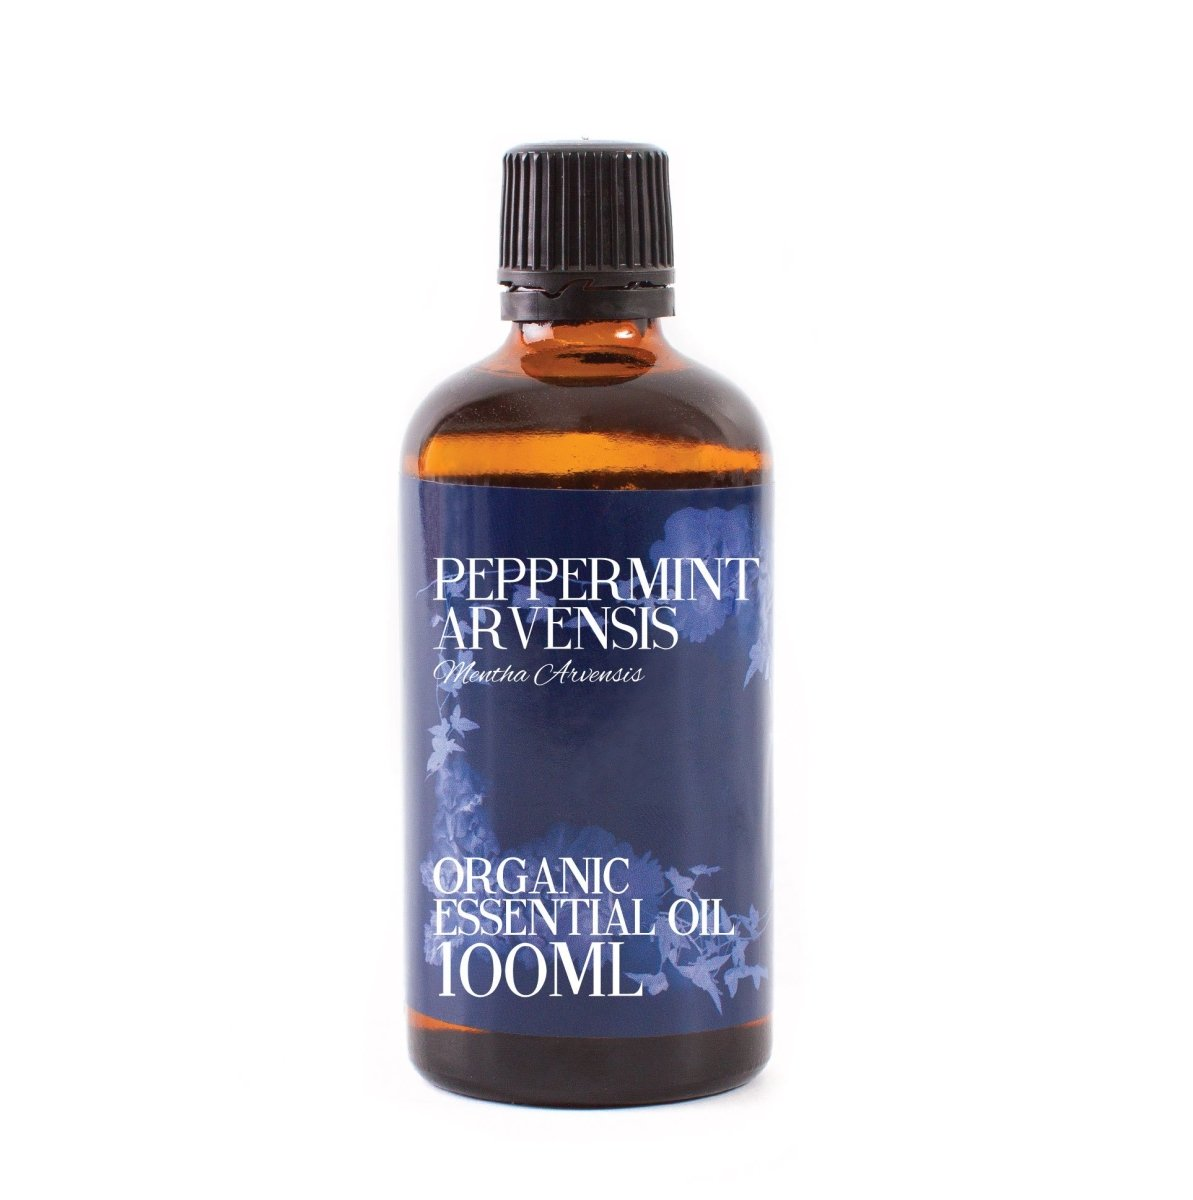 Peppermint Arvensis Organic Essential Oil - Mystic Moments UK